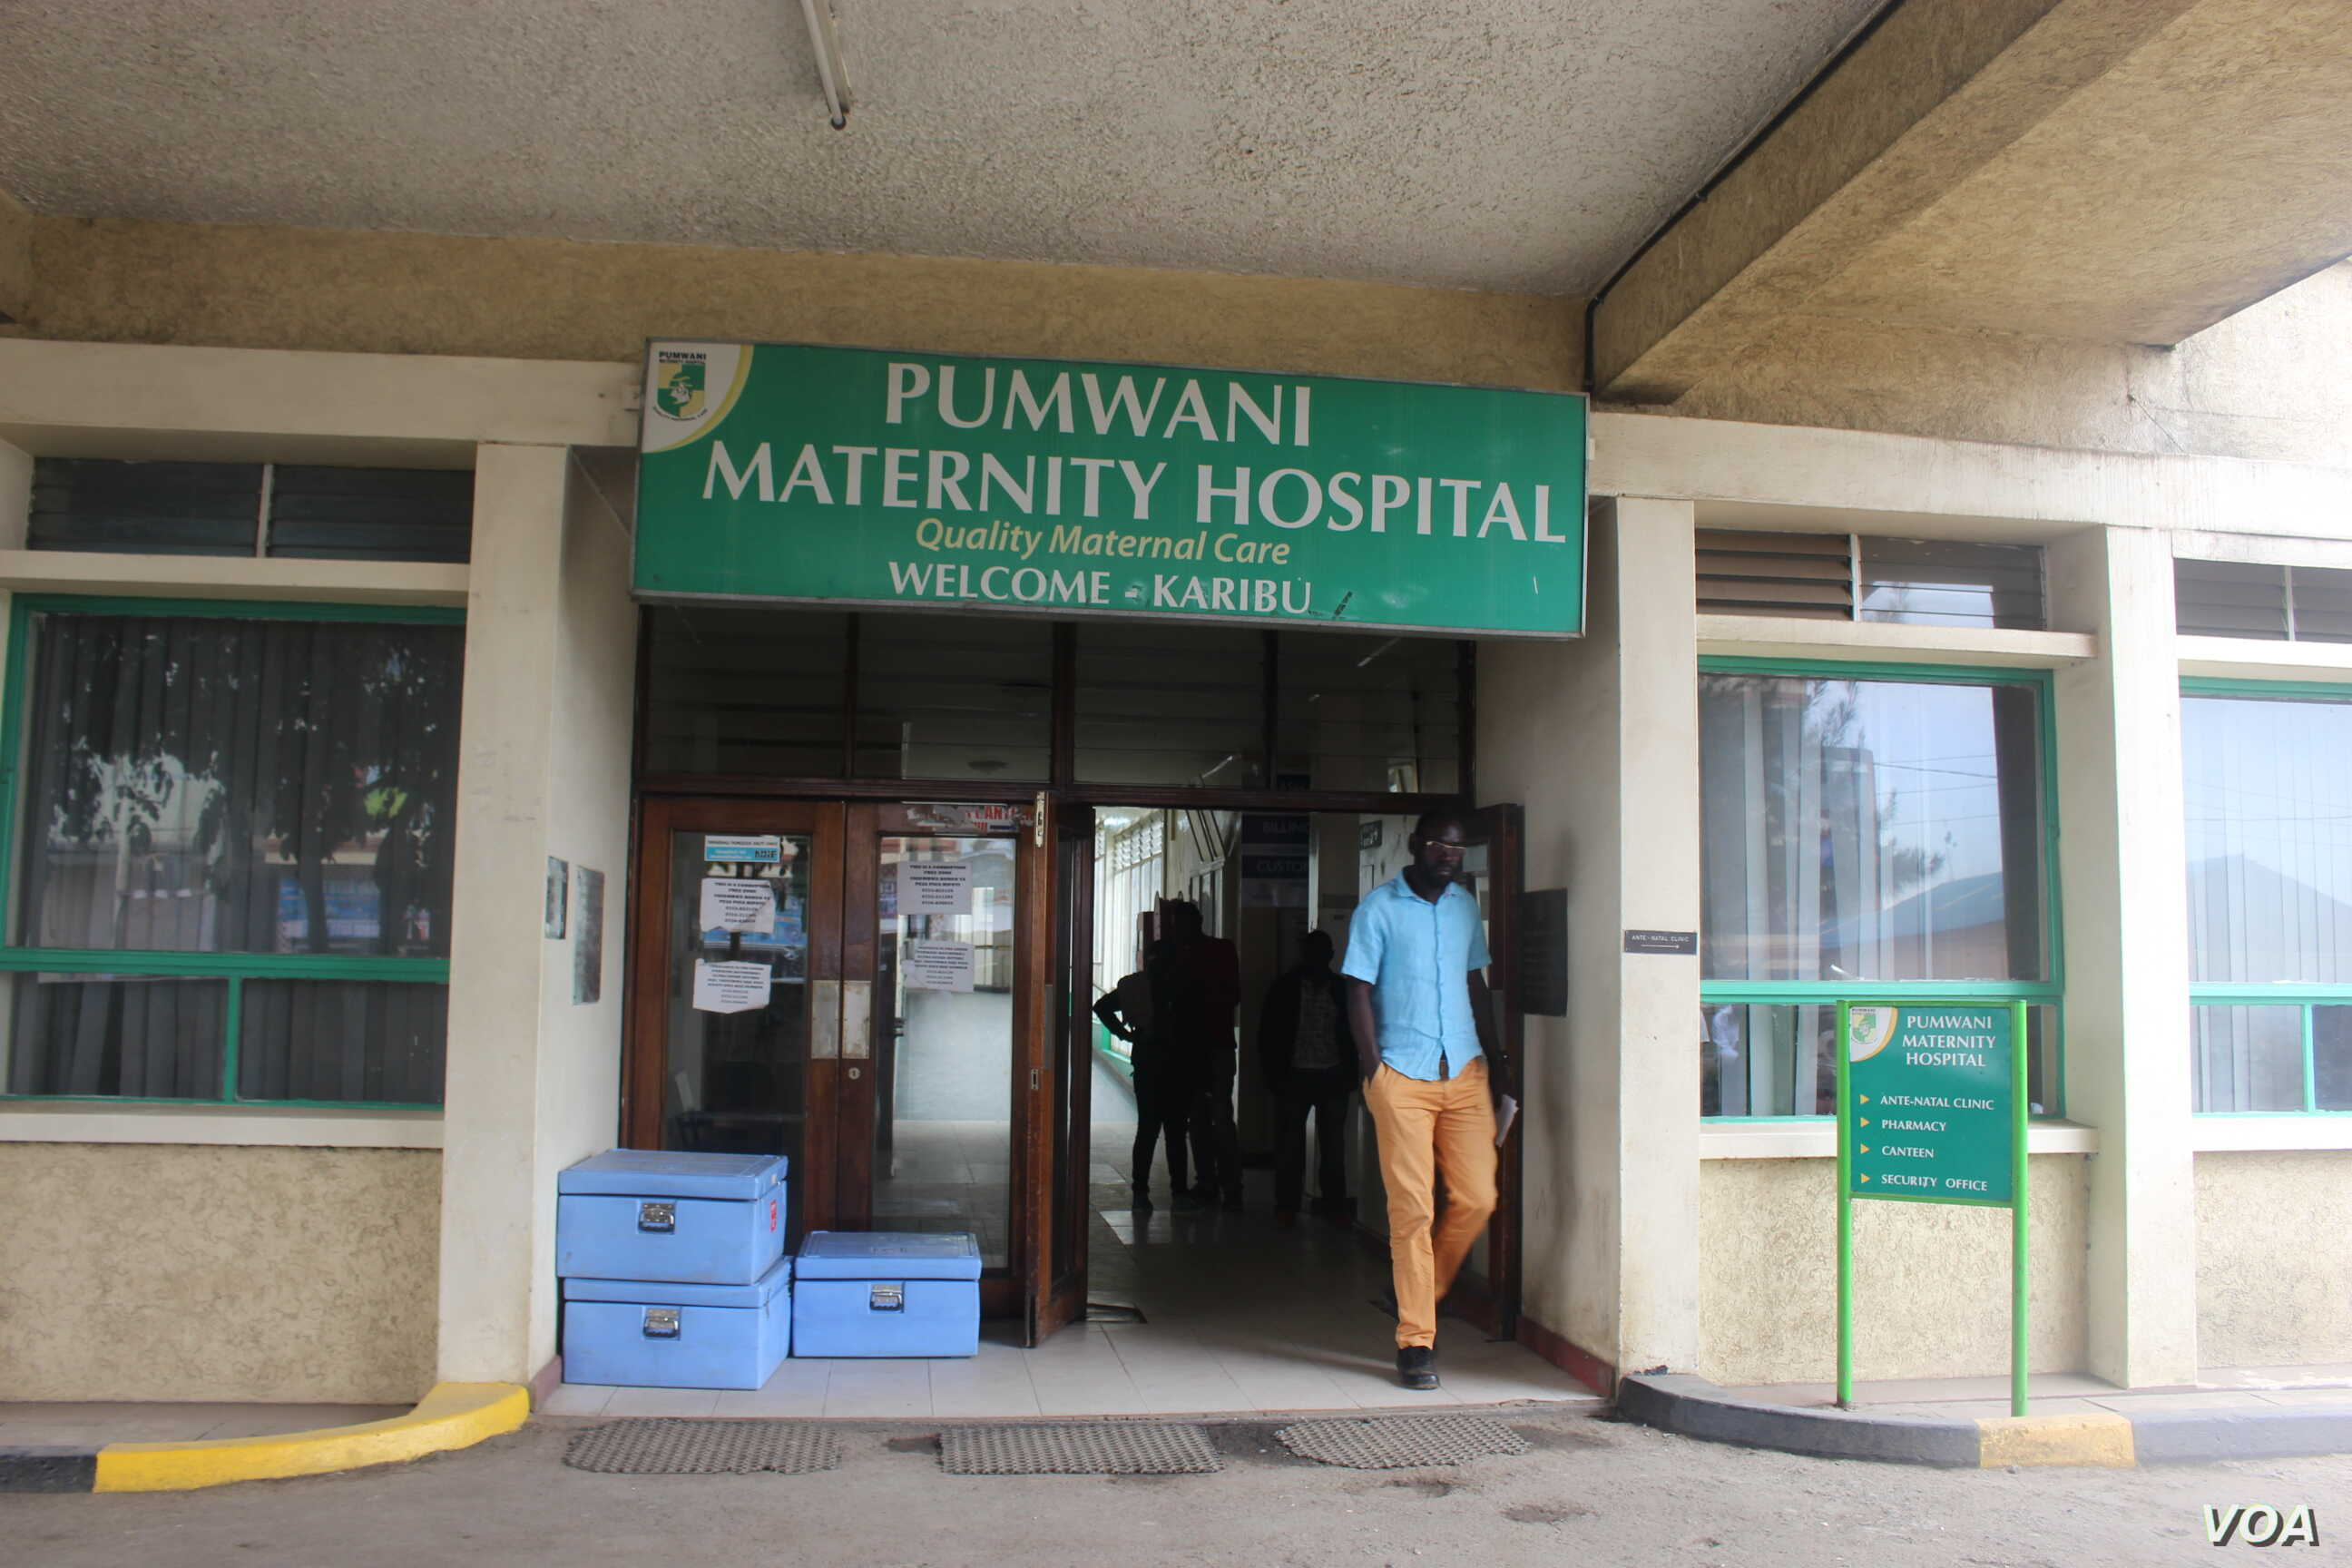 Plans are underway to bring a human milk bank to Nairobi as a joint effort between the Kenya Ministry of Health and PATH. The bank will be housed in Pumwani Maternity Hospital. (R. Ombuor/VOA)